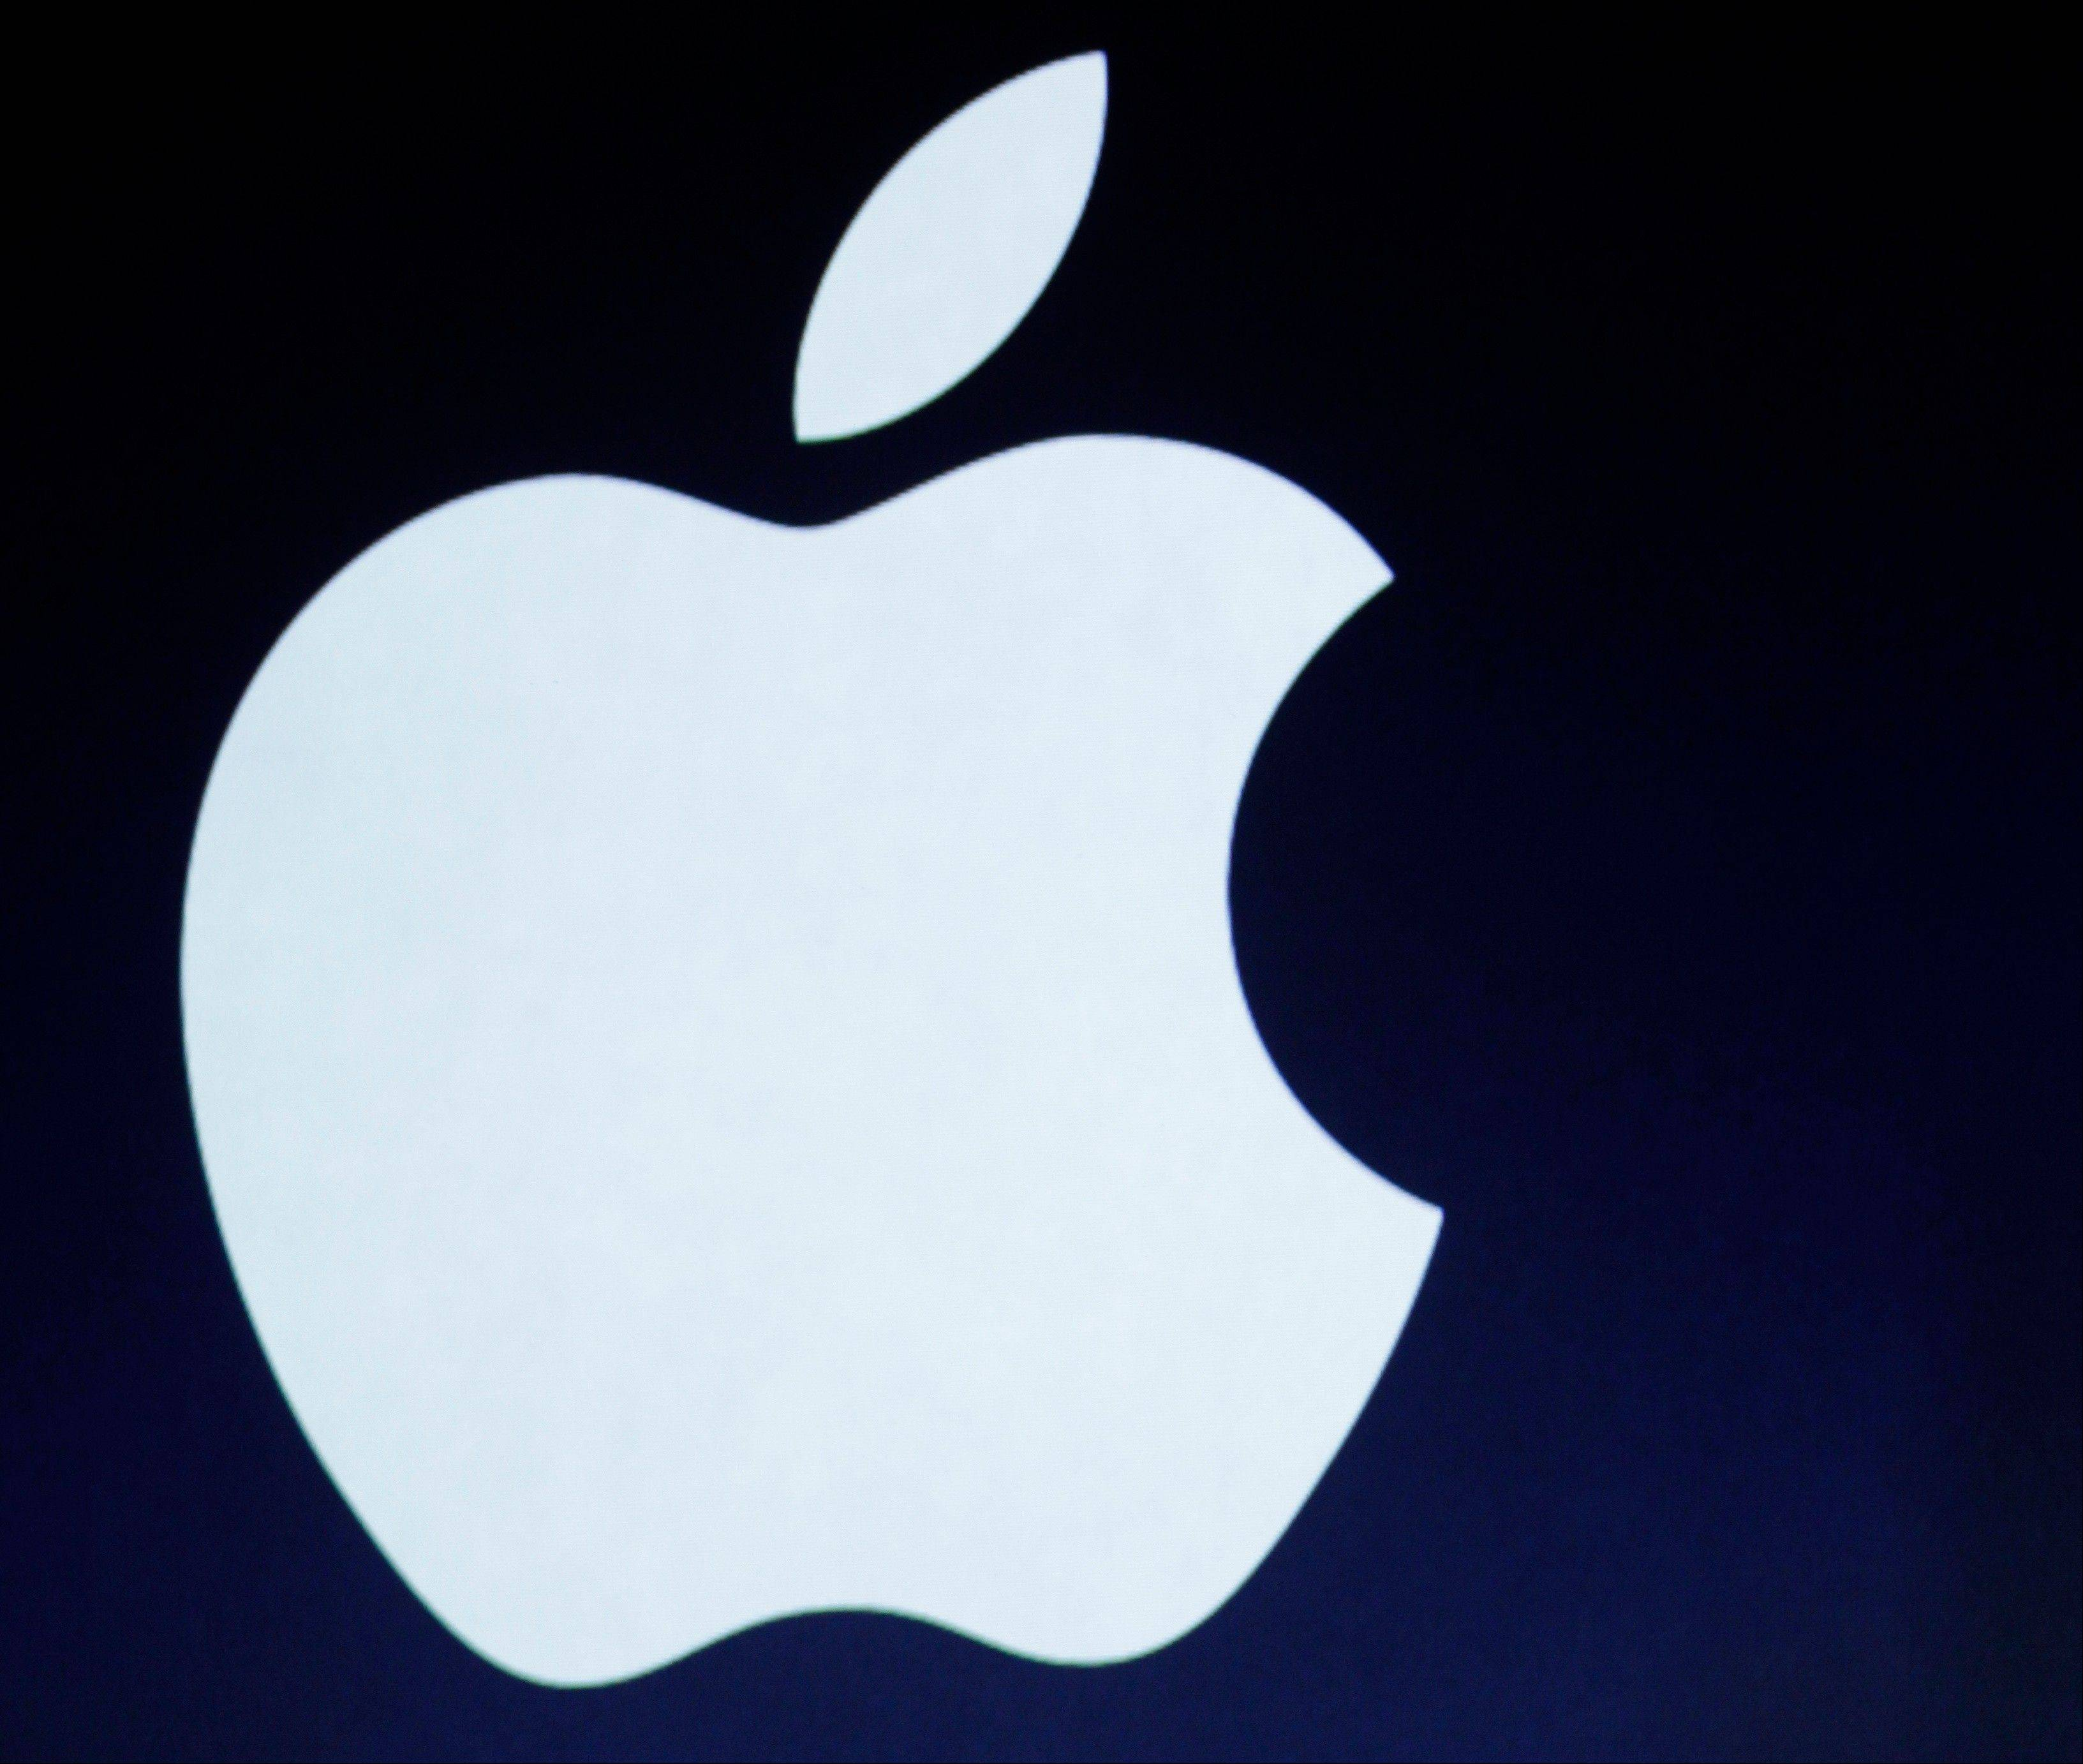 Associated Press/March 7, 2012The Apple logo is projected during an announcement in San Francisco.